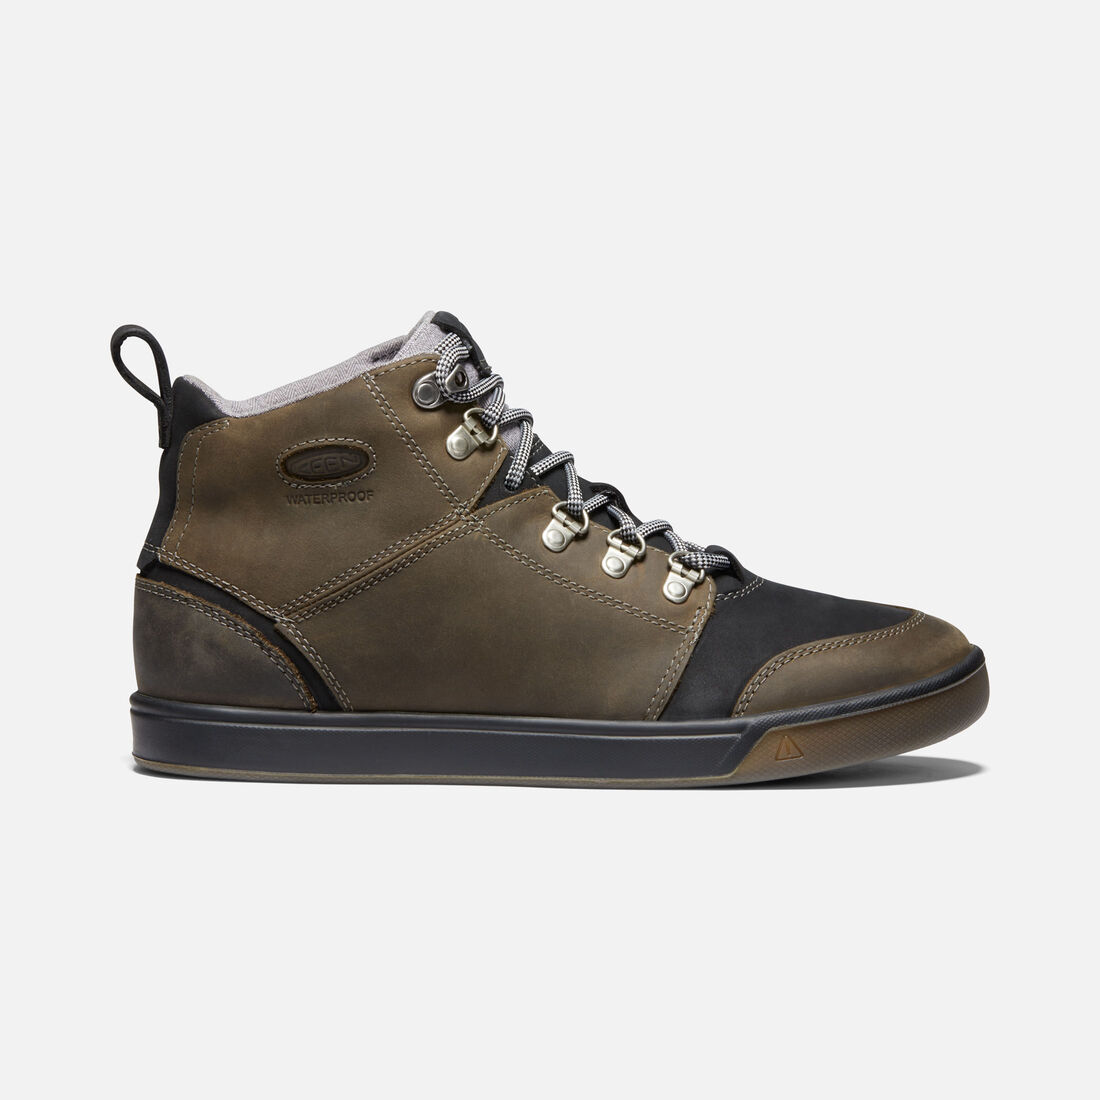 MEN'S WINTERHAVEN WATERPROOF  CASUAL BOOTS in Alcatraz/Black - large view.